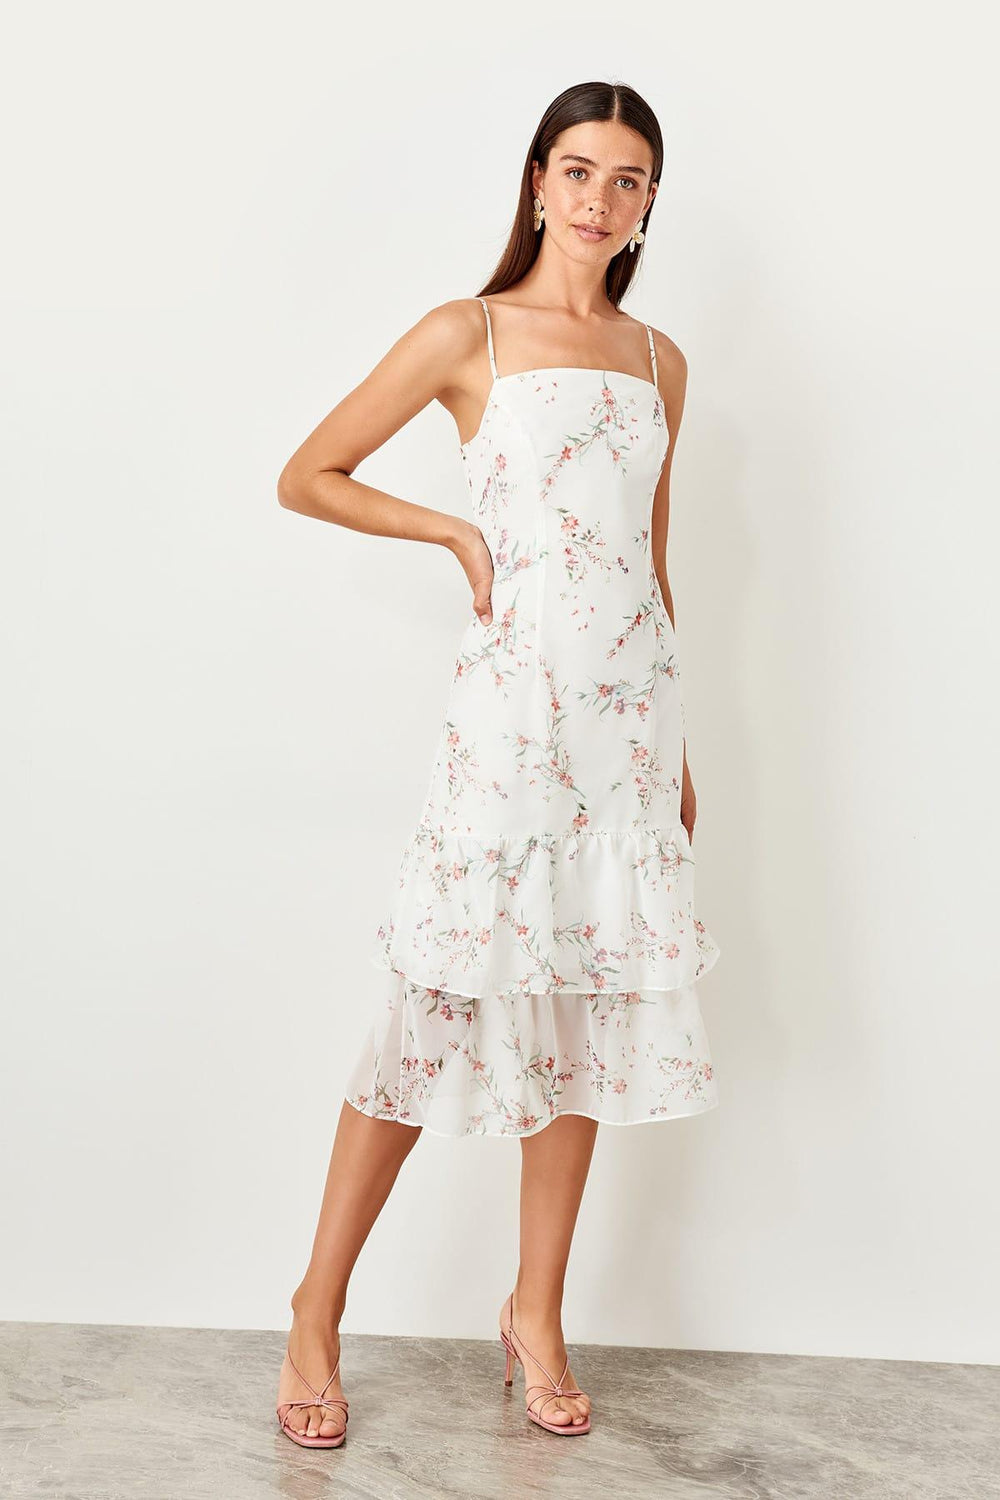 White Flower Print Midi Dress - Top Maxy